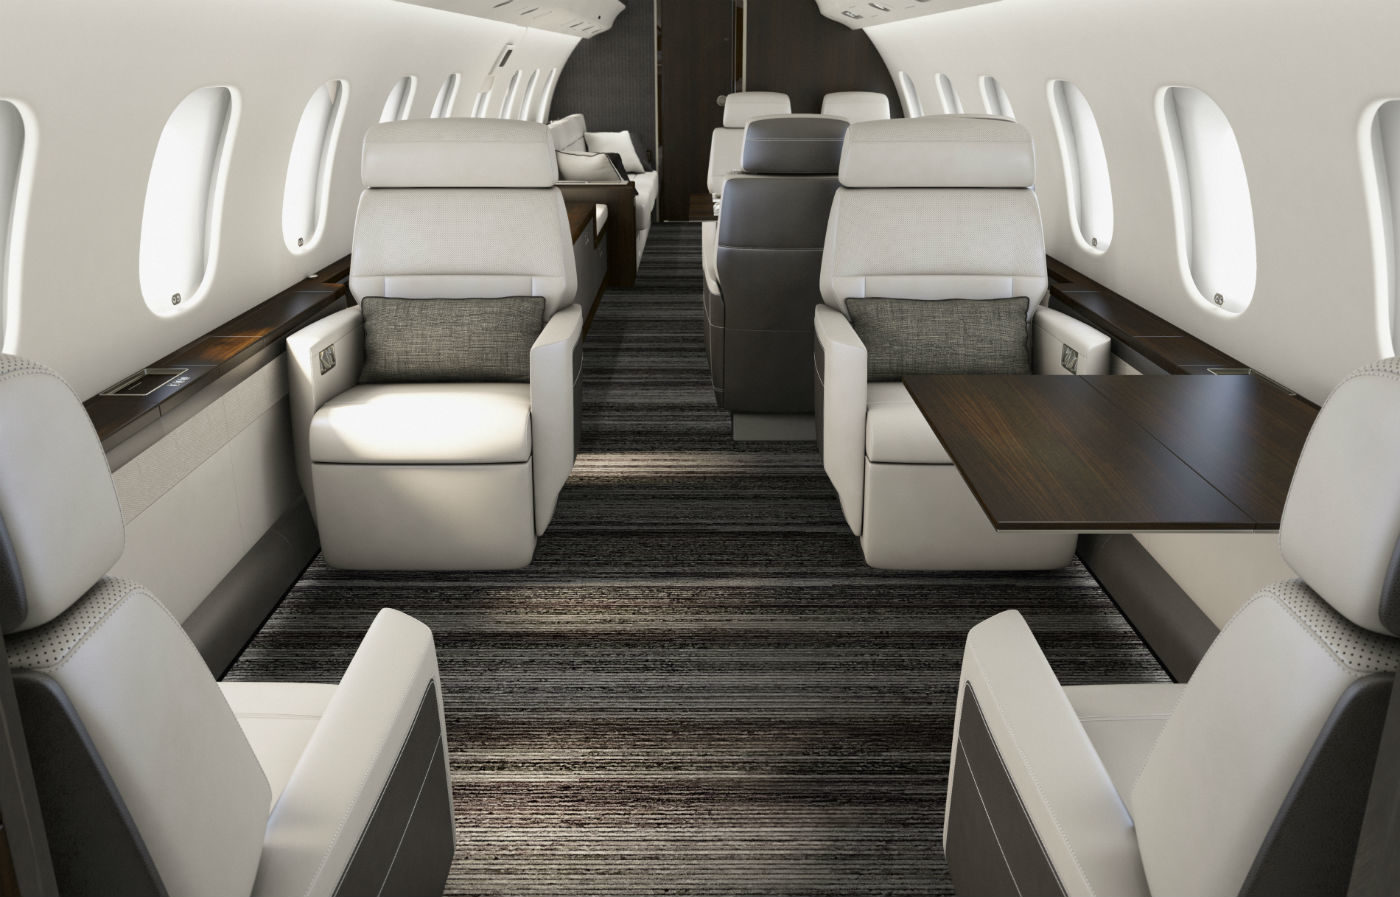 The new Premier cabin features architectural design and commonality with the entire Global family. Bombardier Photo